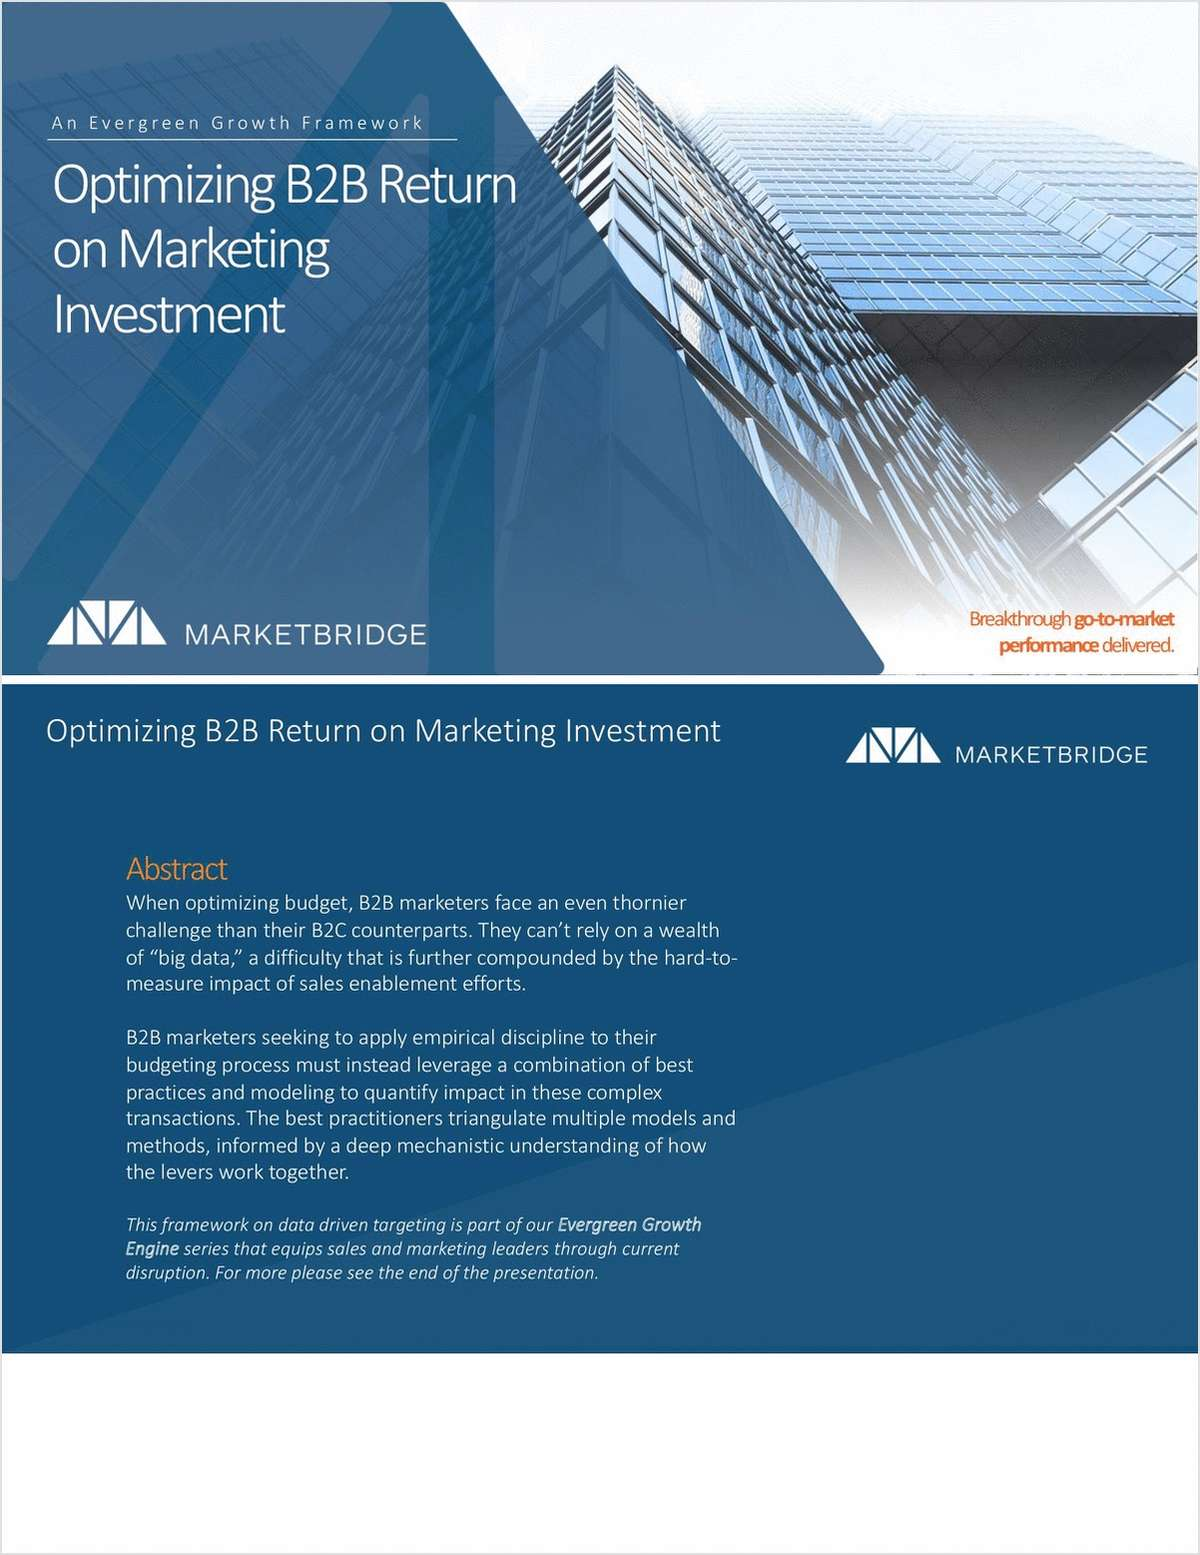 Optimizing B2B Return on Marketing Investment